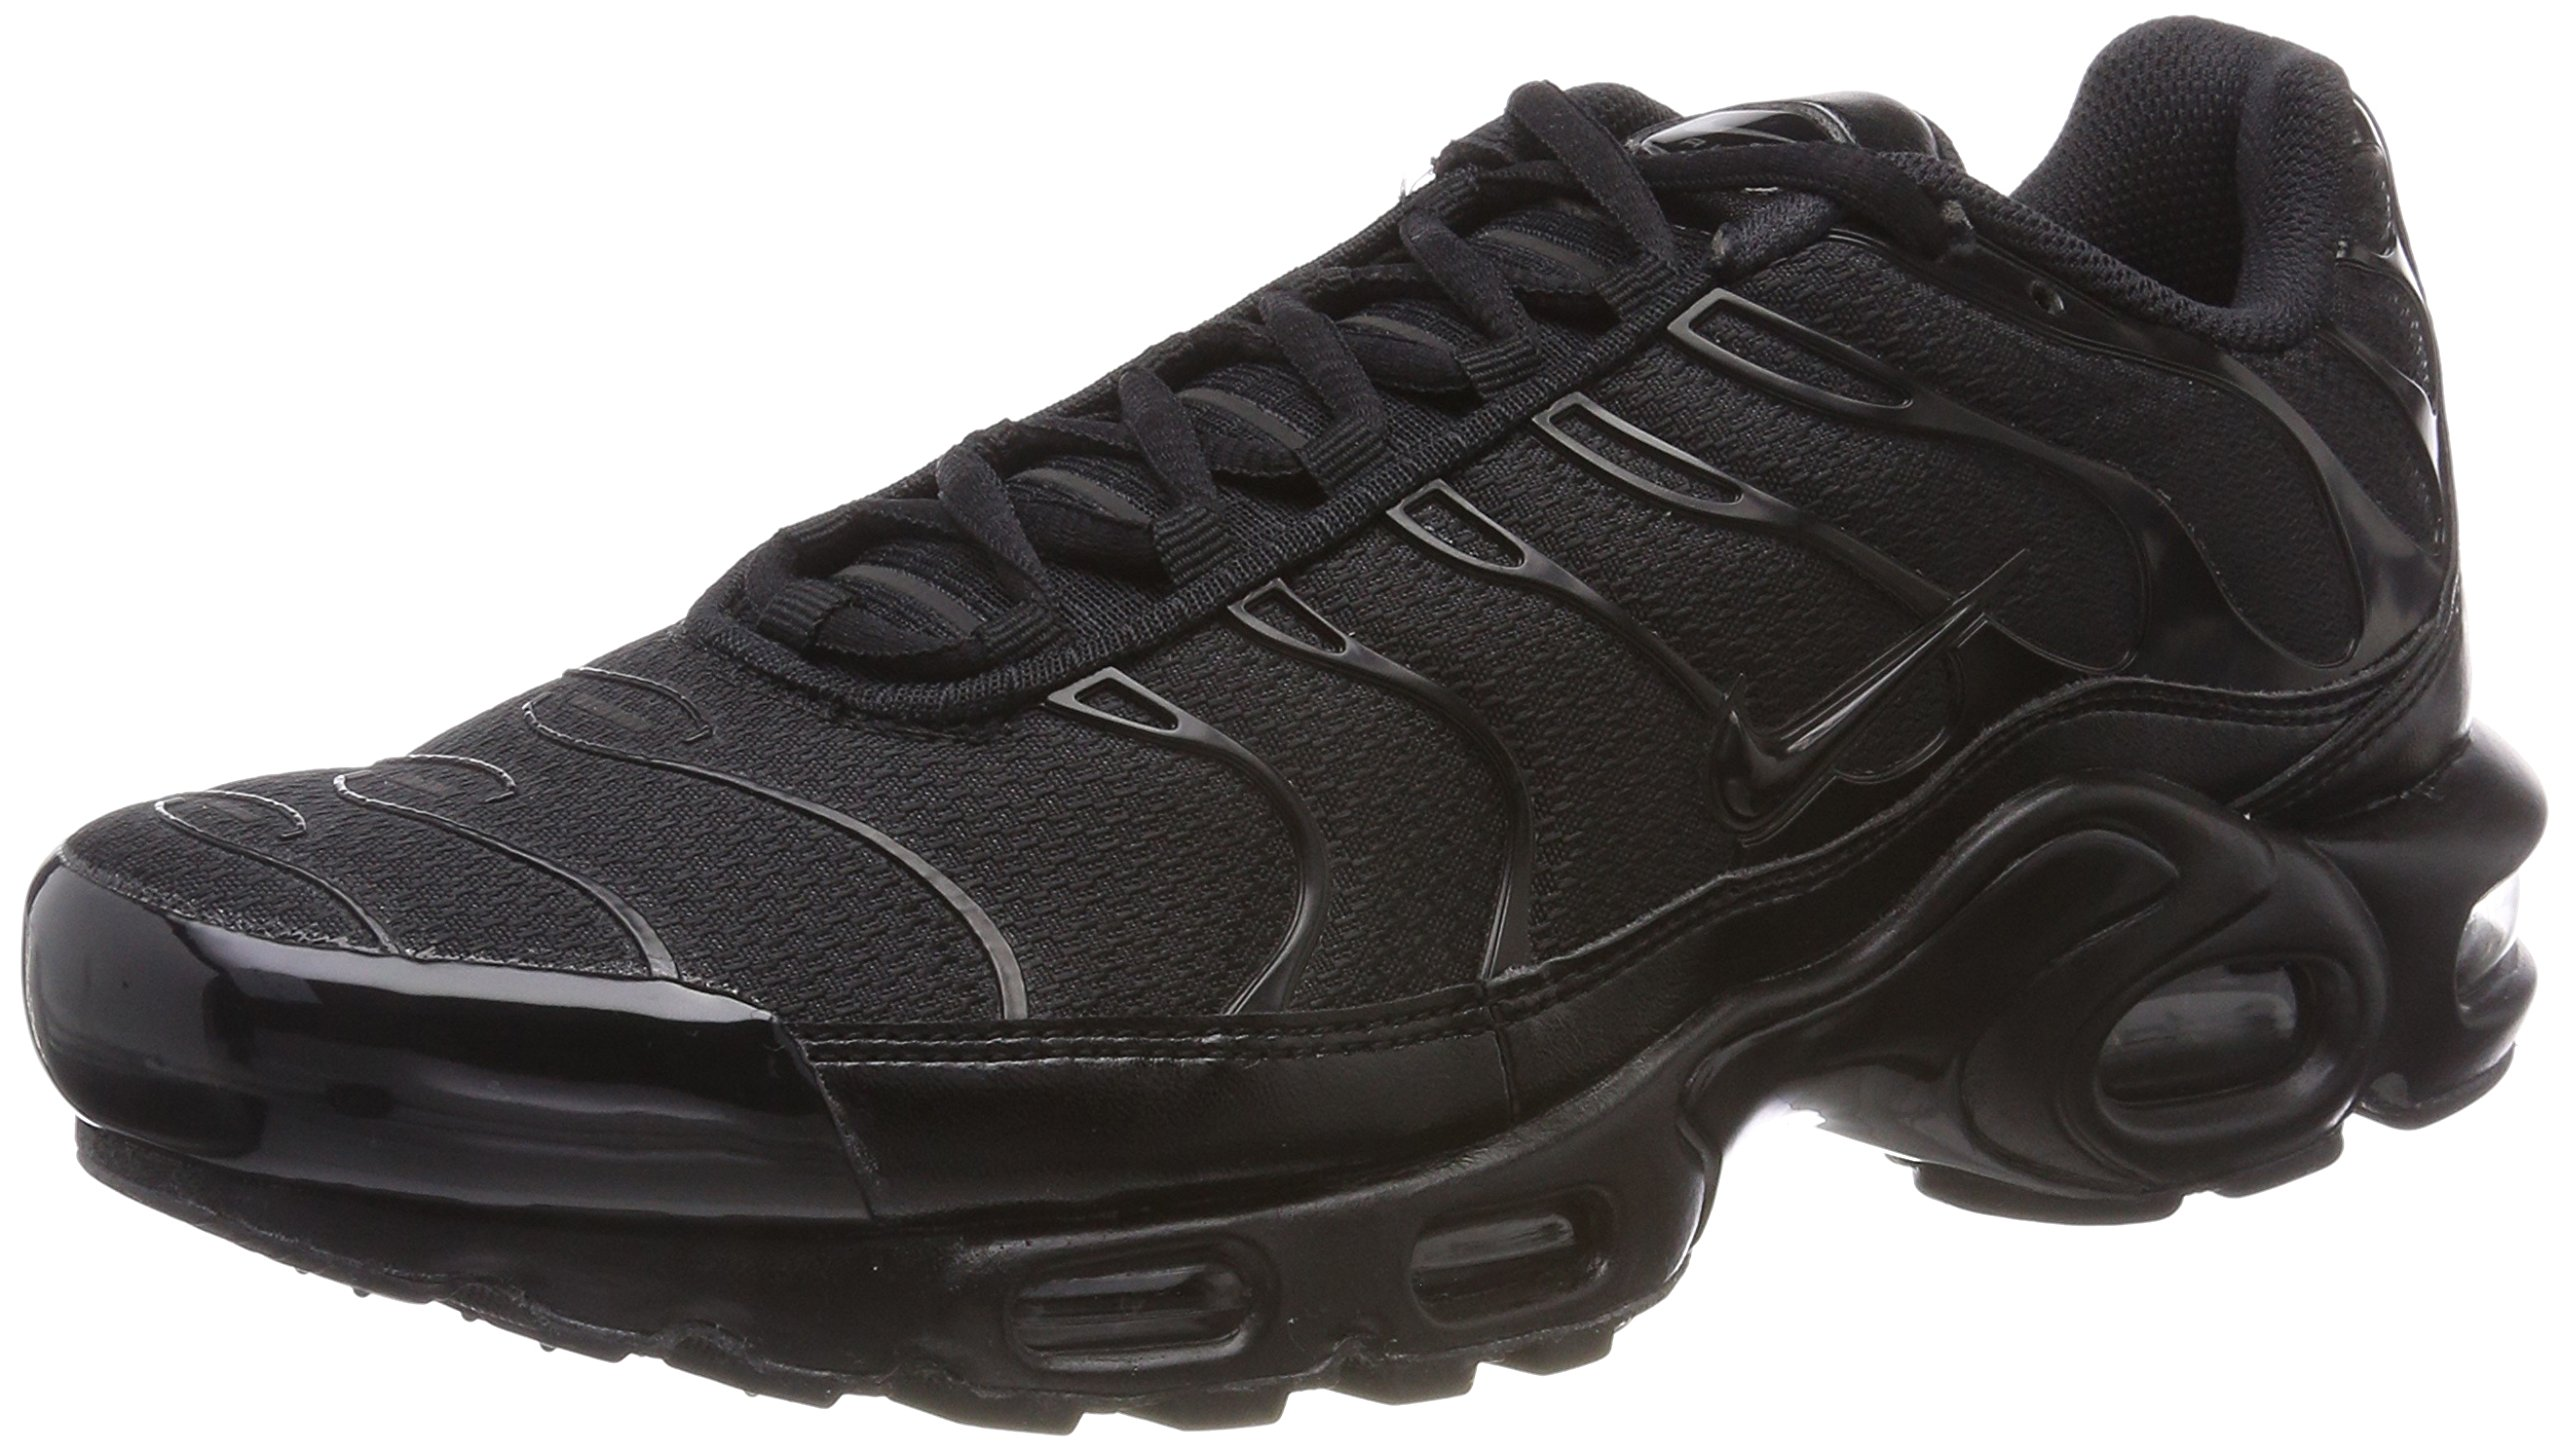 reputable site 77725 a206e Galleon - Nike Men s Air Max Plus Tuned 1 Fabric Trainer Shoes (8 D(M) US)